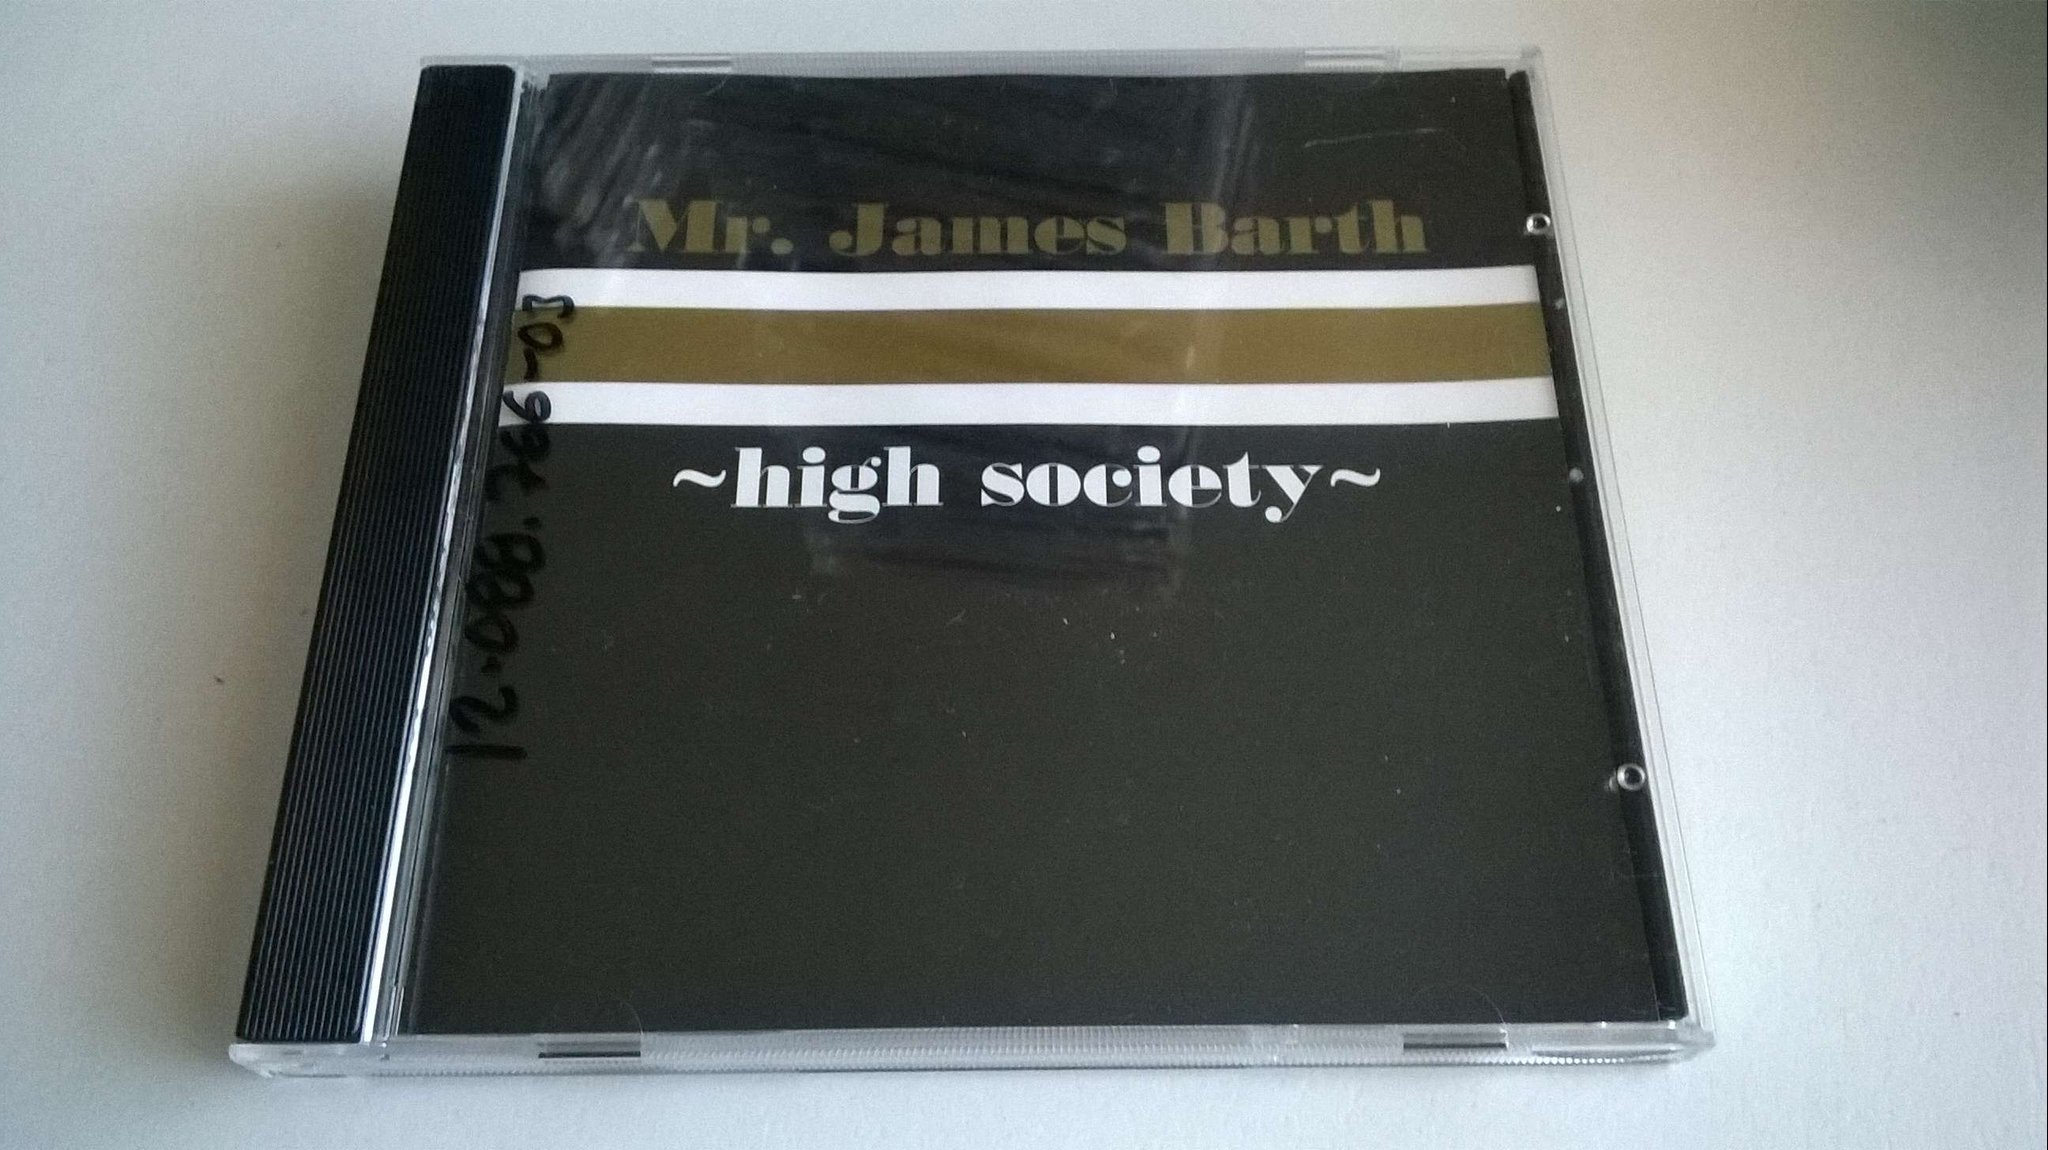 Mr. James Barth ?– High Society, CD, maxi single